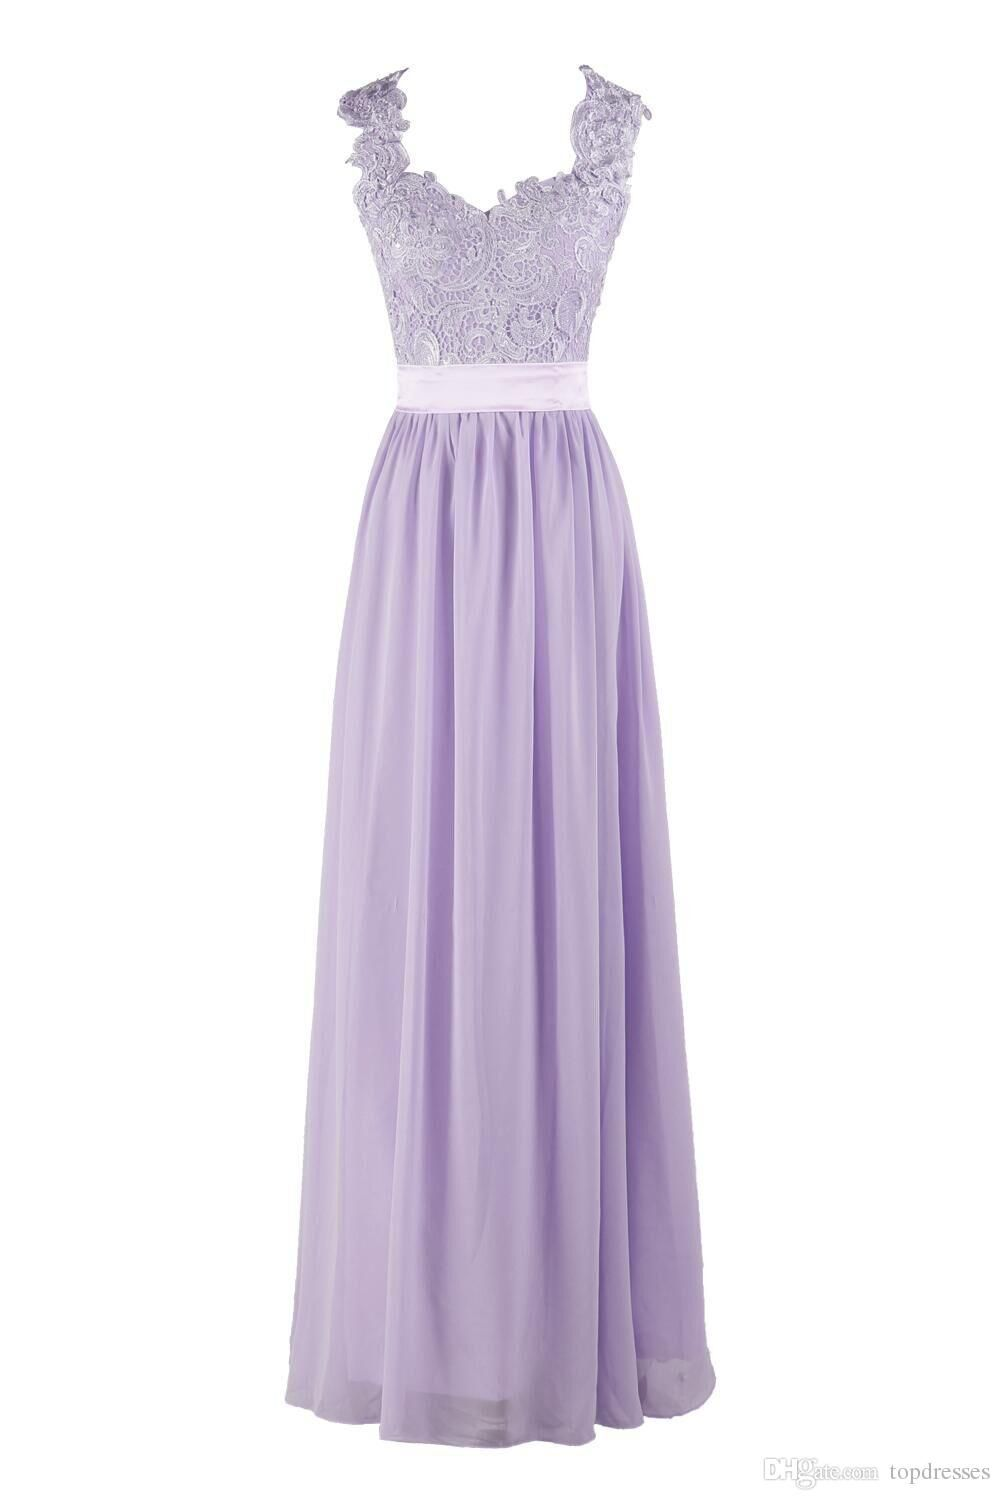 Cheap hot selling purple lilac lavender bridesmaid dresses lace cheap hot selling purple lilac lavender bridesmaid dresses lace chiffon maid of honor beach wedding party dresses plus size evening dresses as low as 7252 ombrellifo Gallery